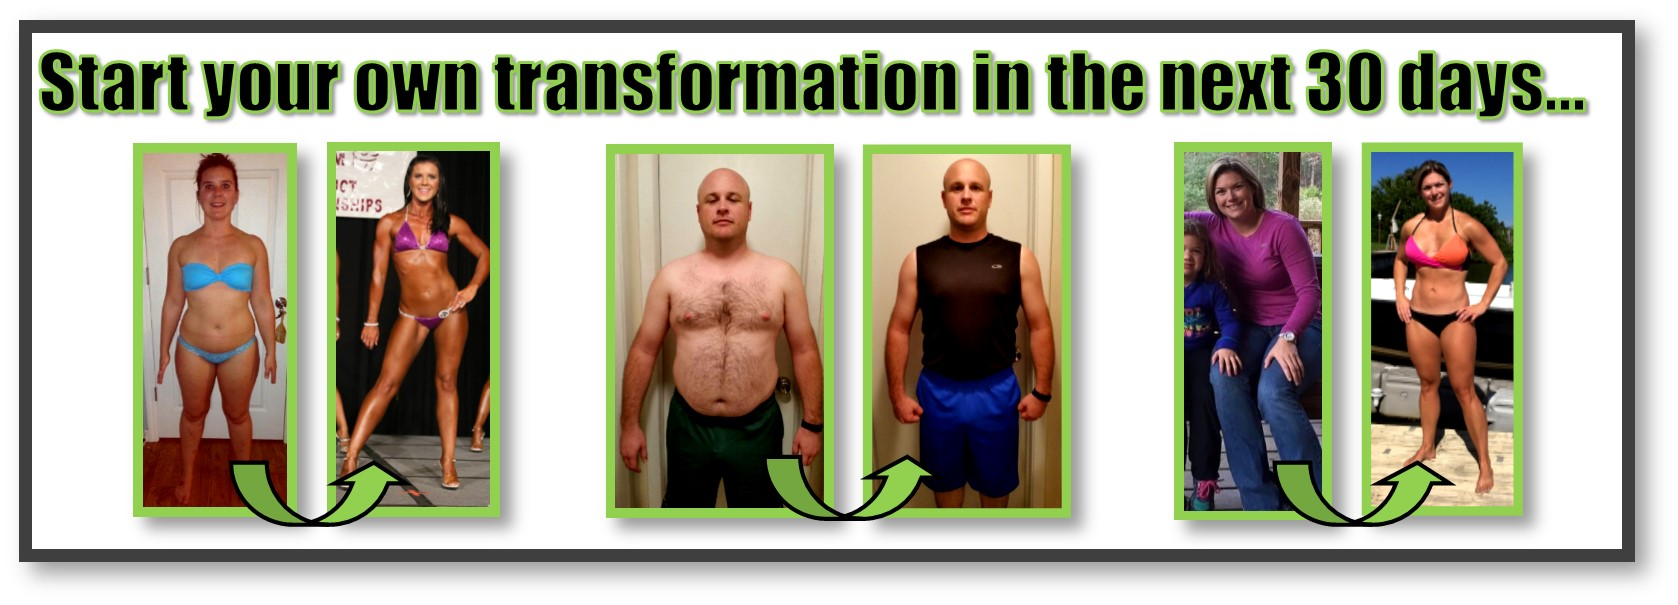 Man to woman transformation pictures free